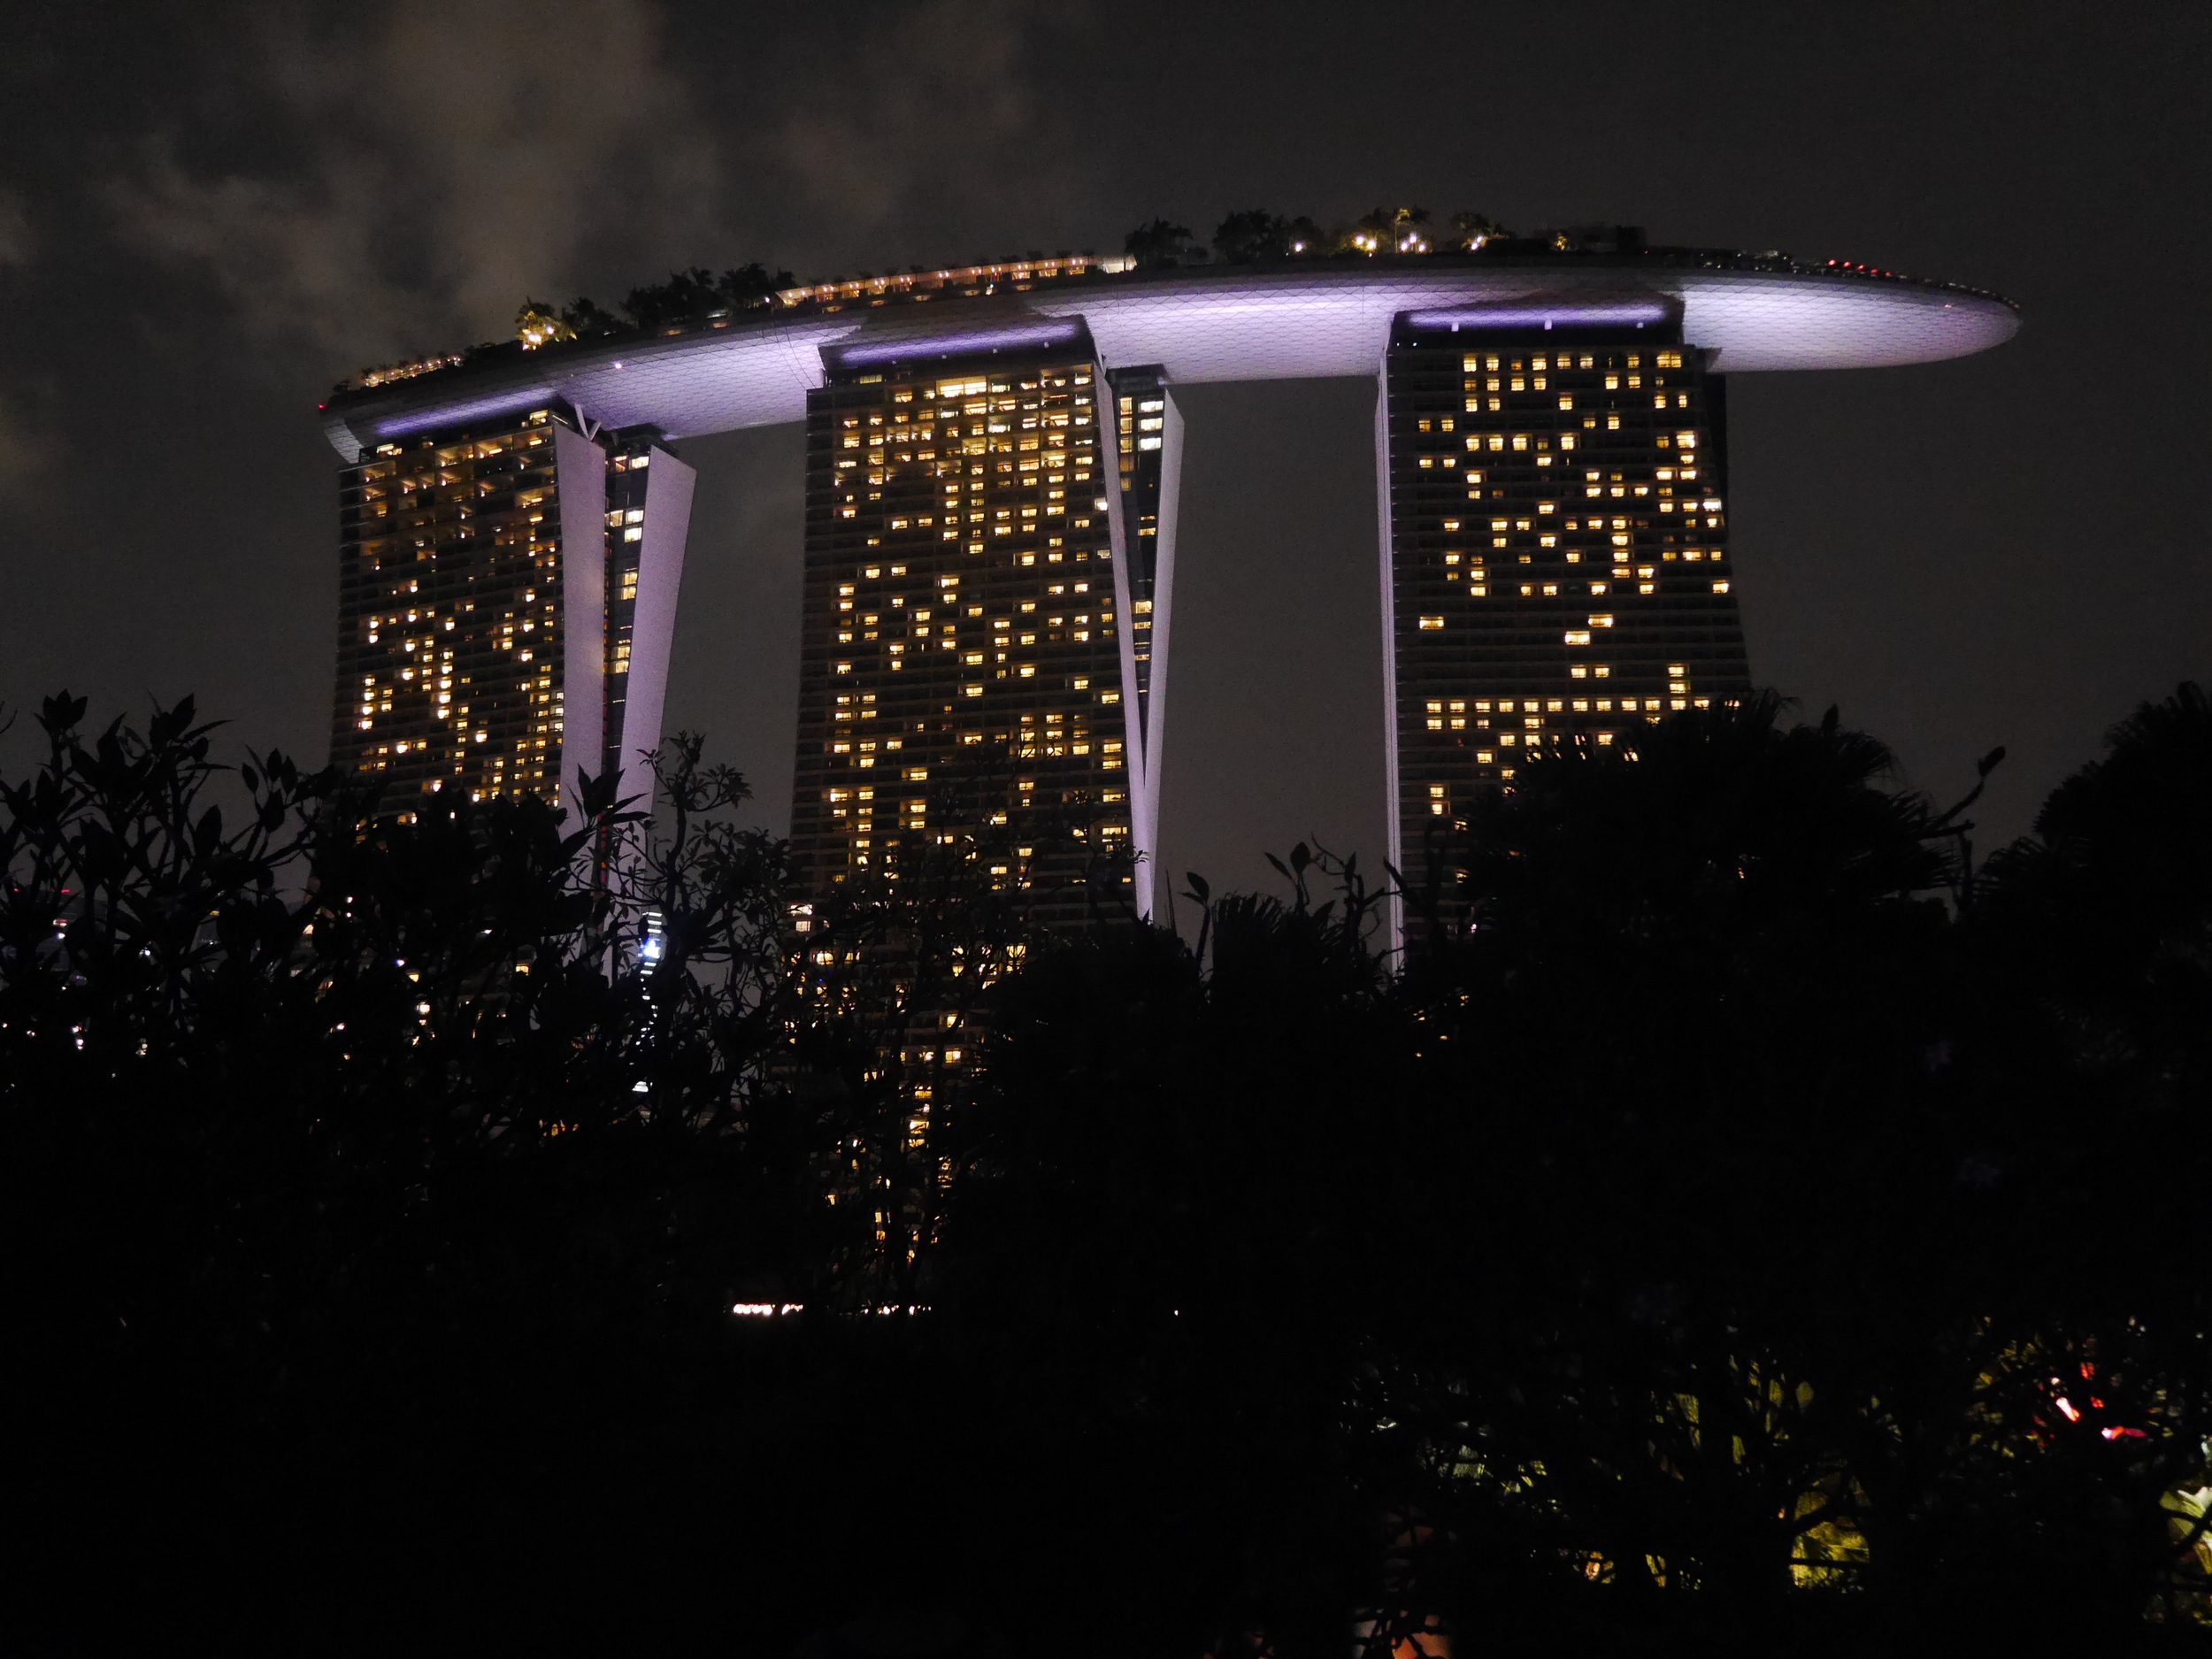 The Marina Bay Sands Hotel at night, from the gardens.